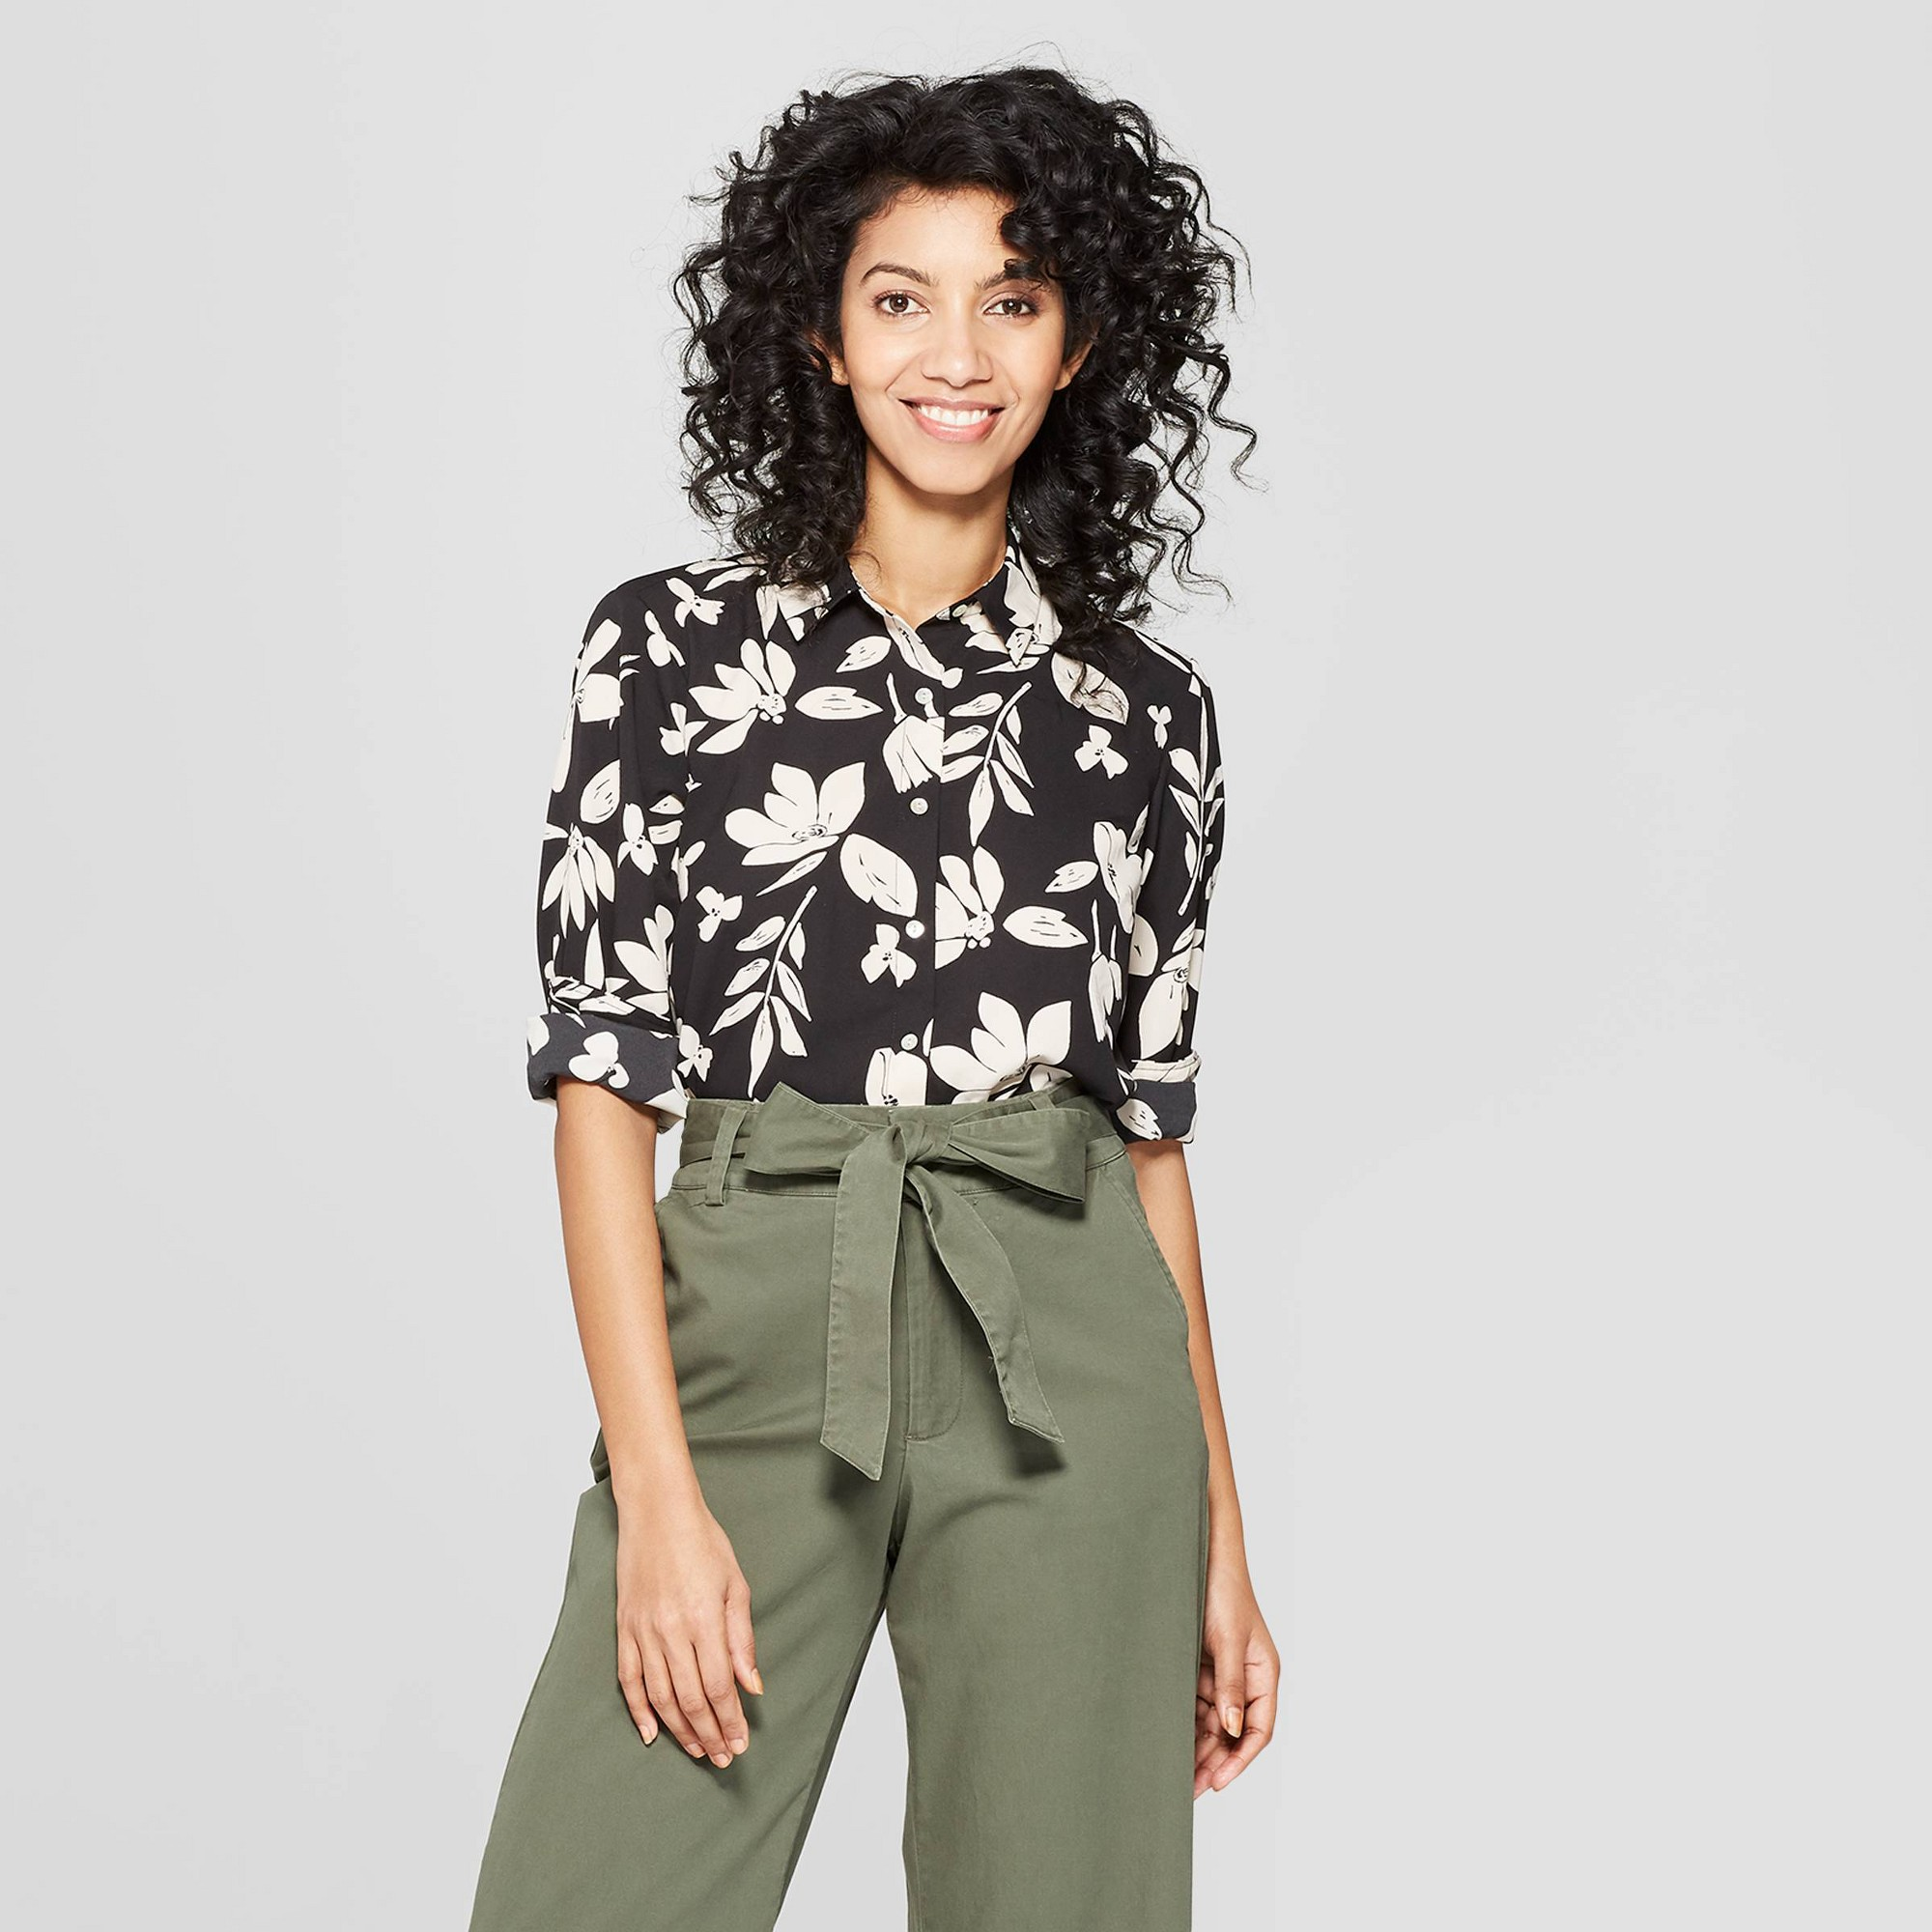 Women's Floral Print Long Sleeve Collared Crepe Blouse - A New Day Black Xxl